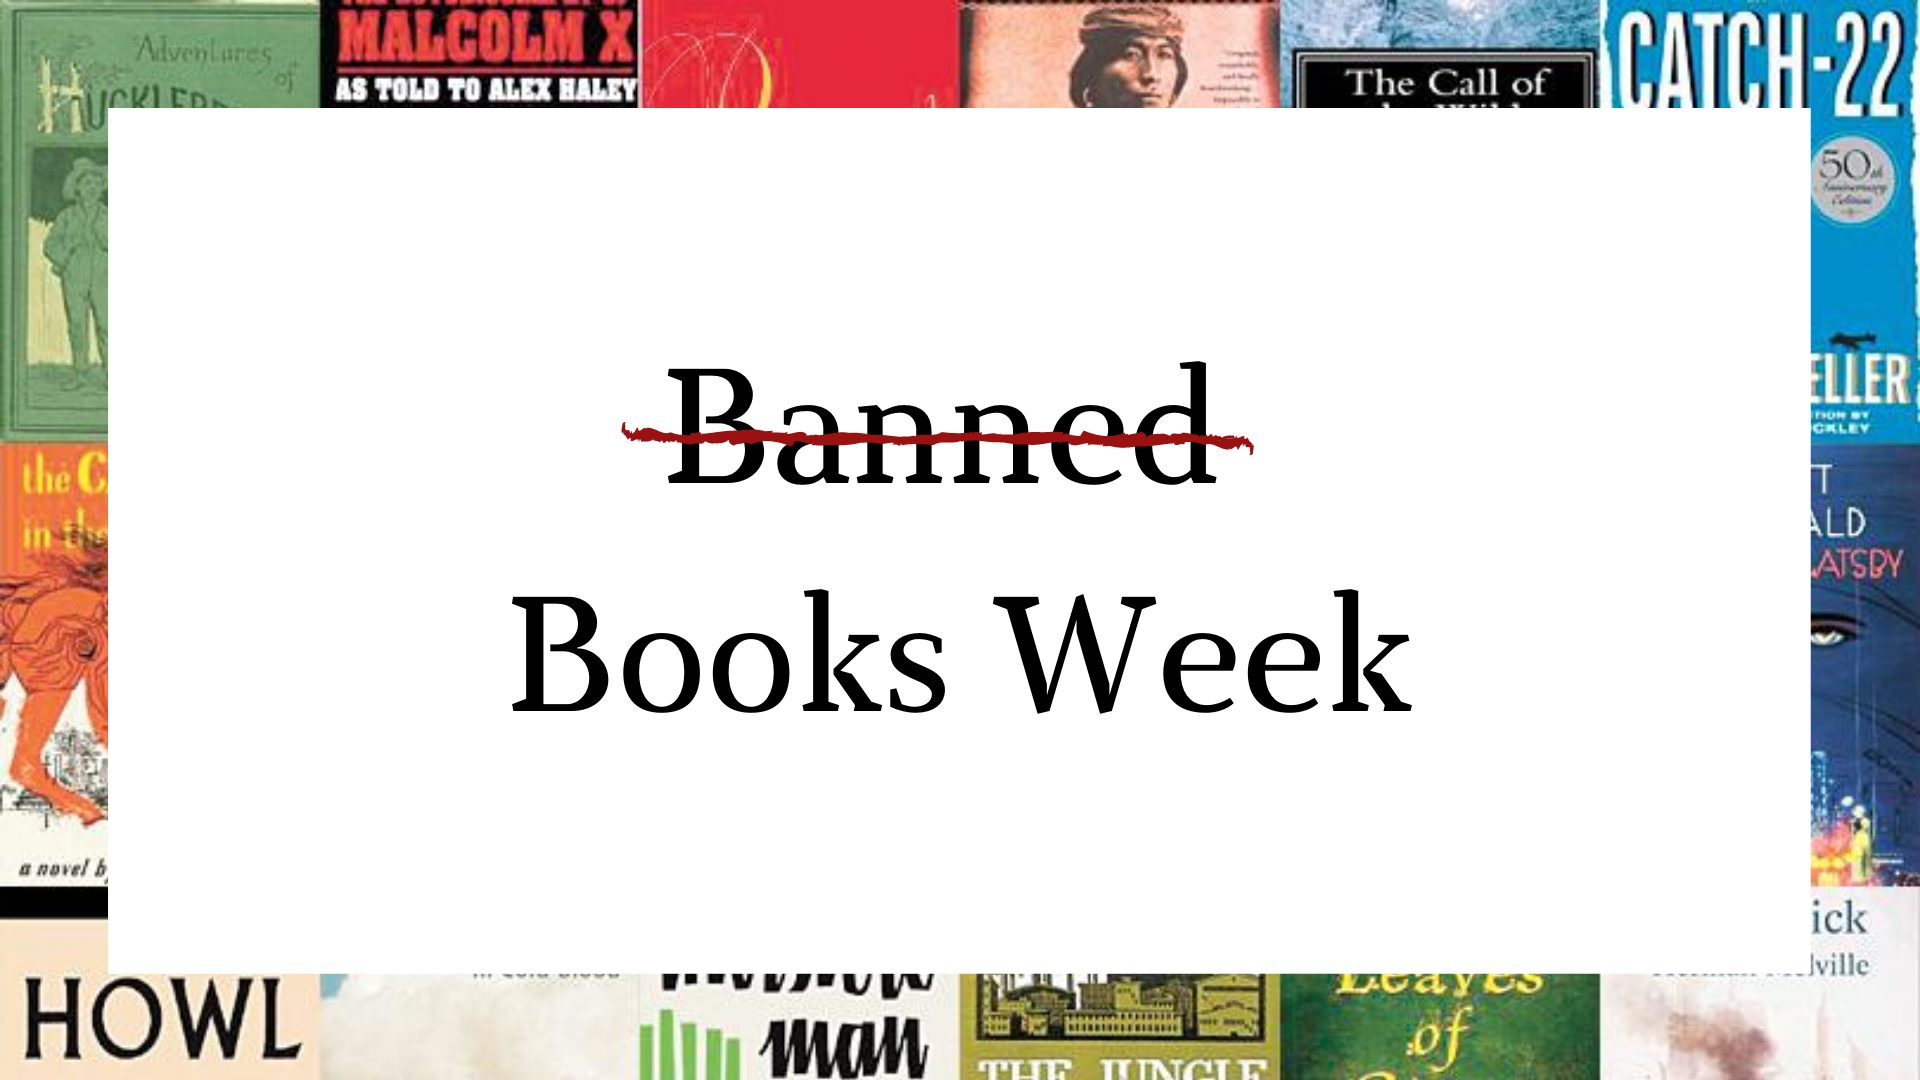 Banned Books Week Blog Post Image